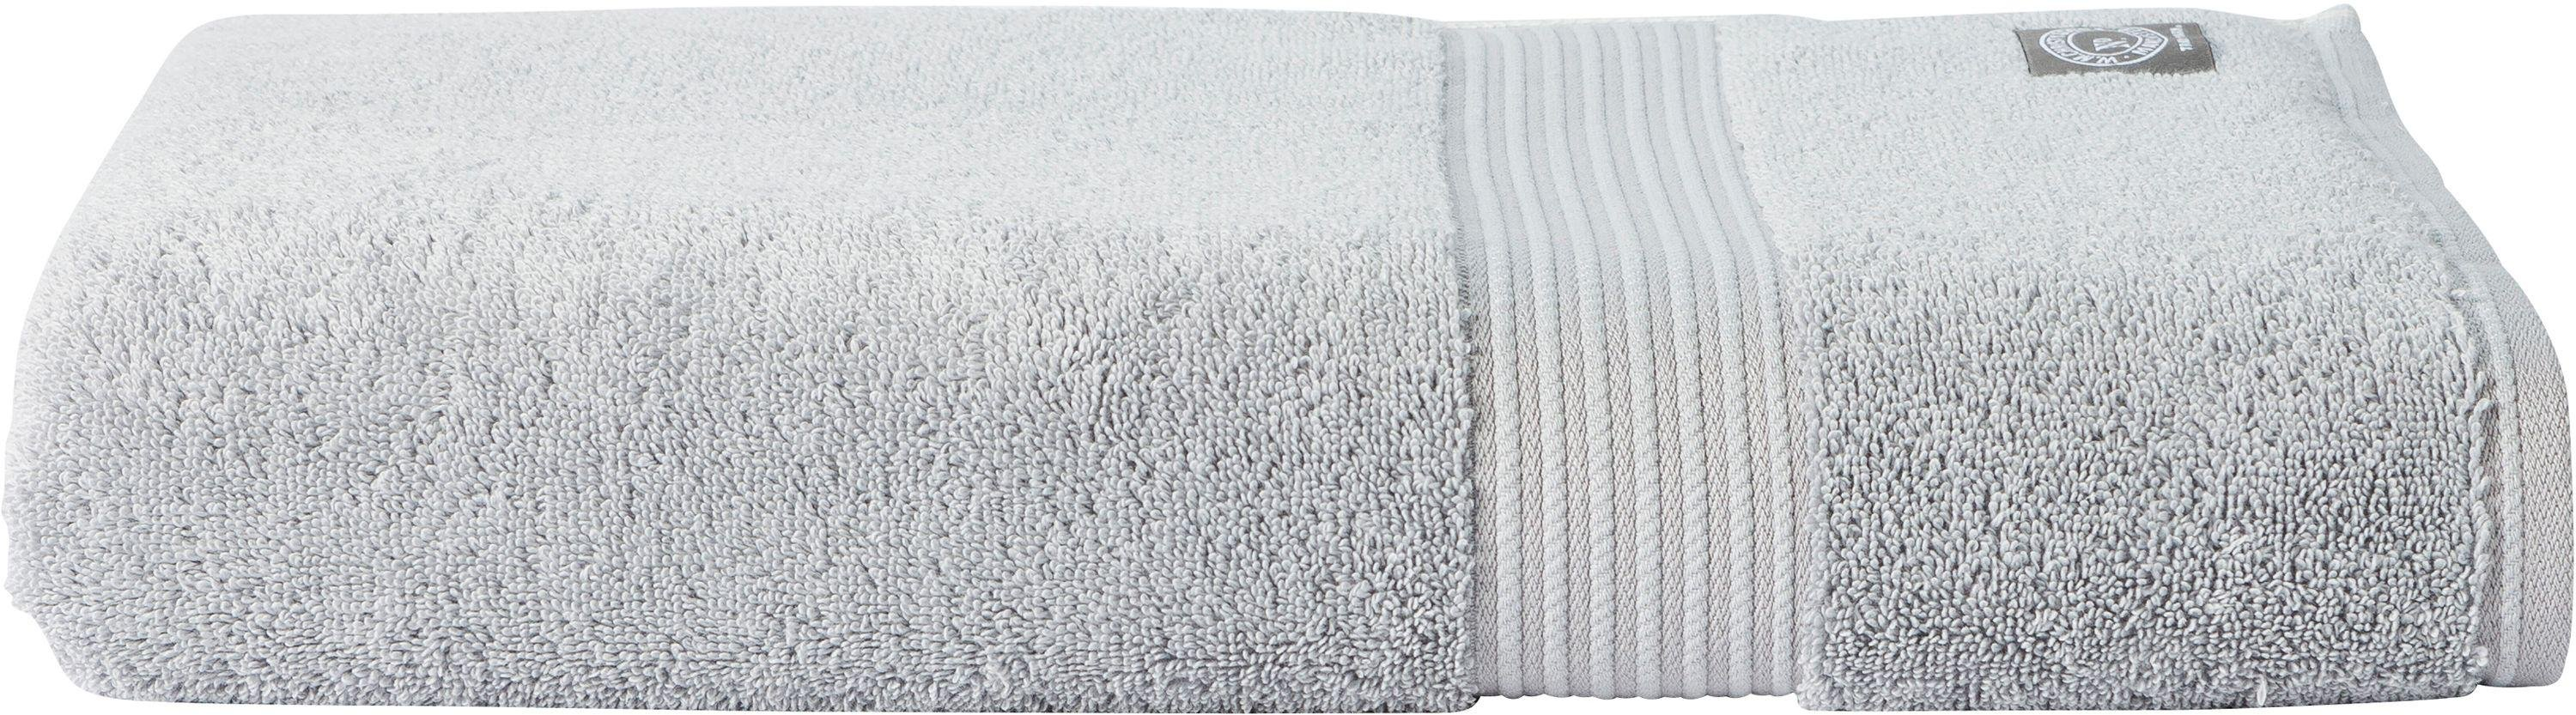 Image of Christy - Supreme Hygro - Bath Sheet - Silver